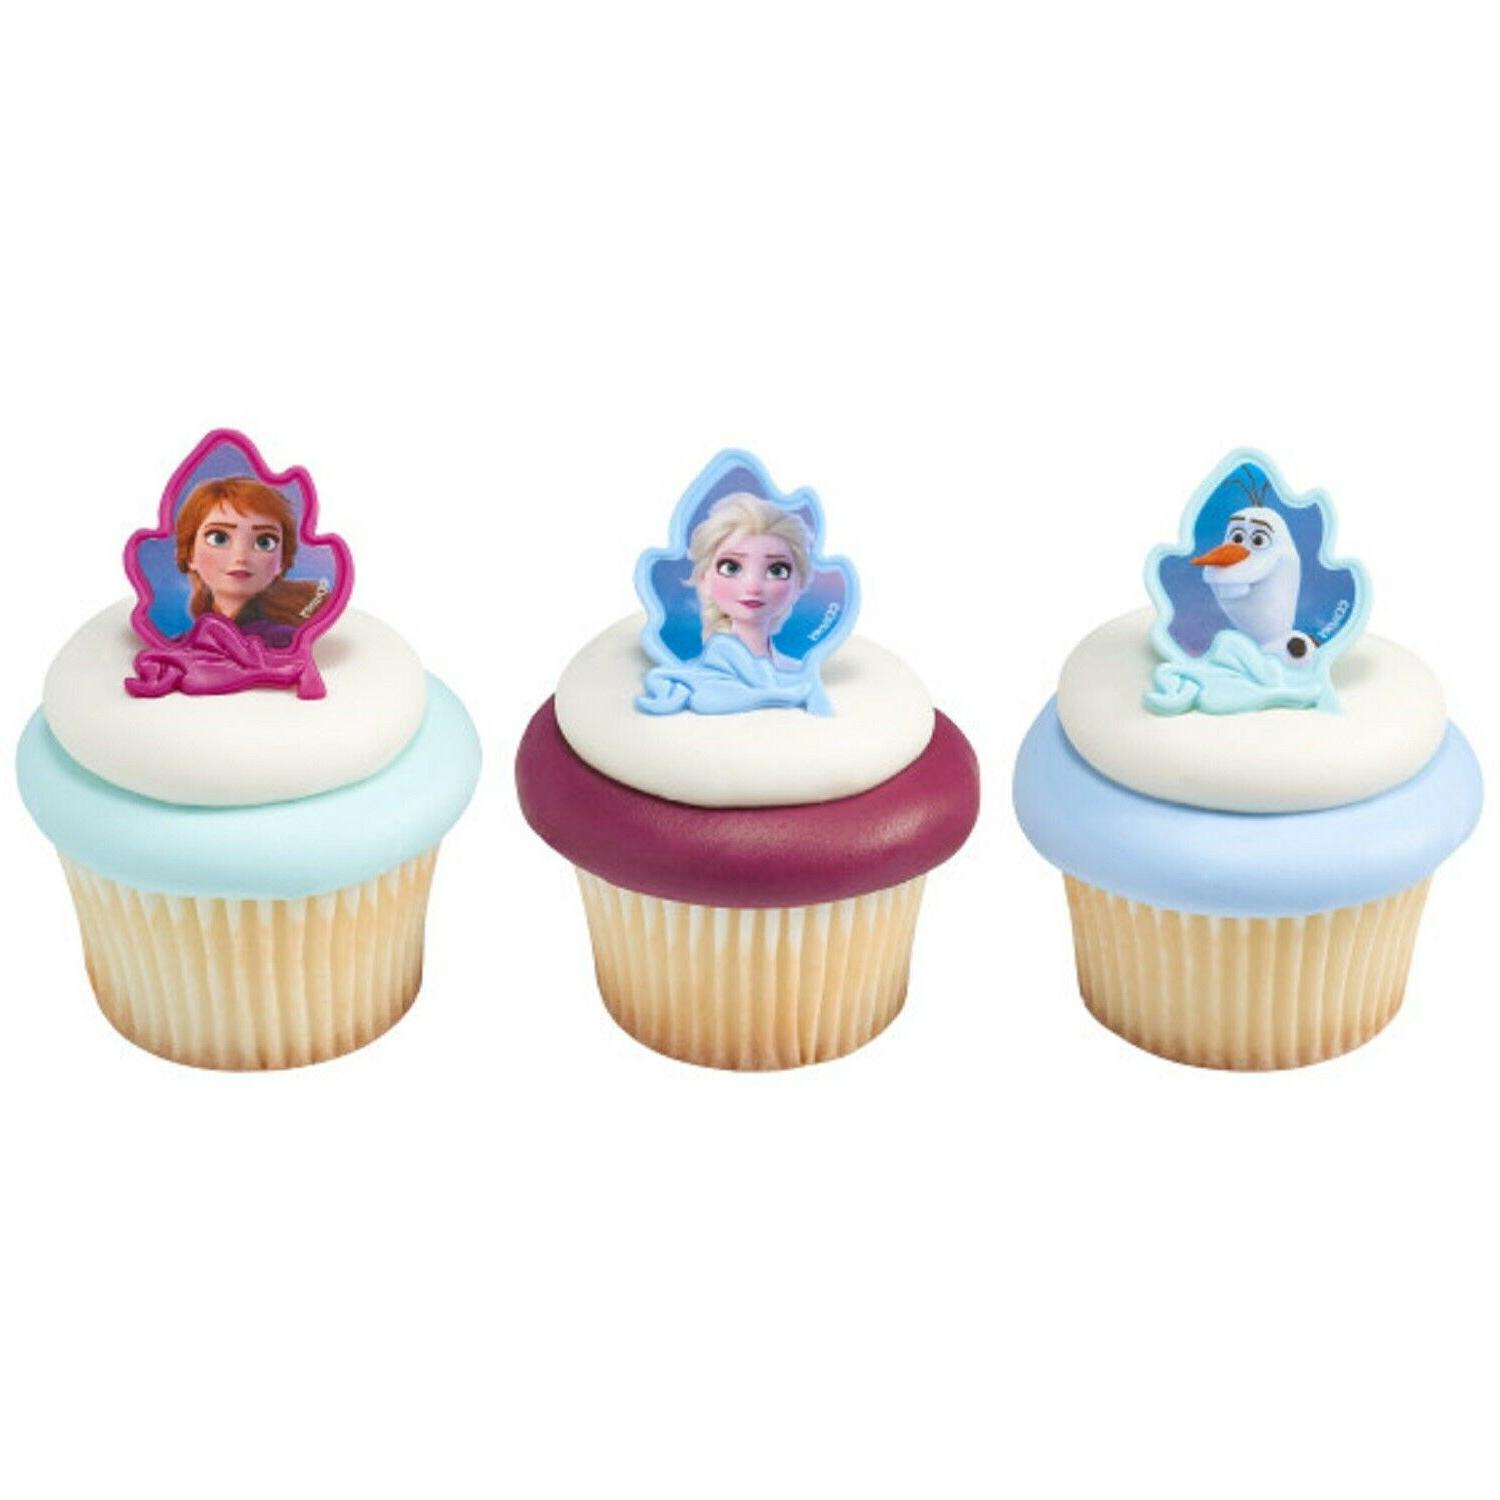 Frozen Cupcake Toppers Party Supplies Cake Decorations - Set